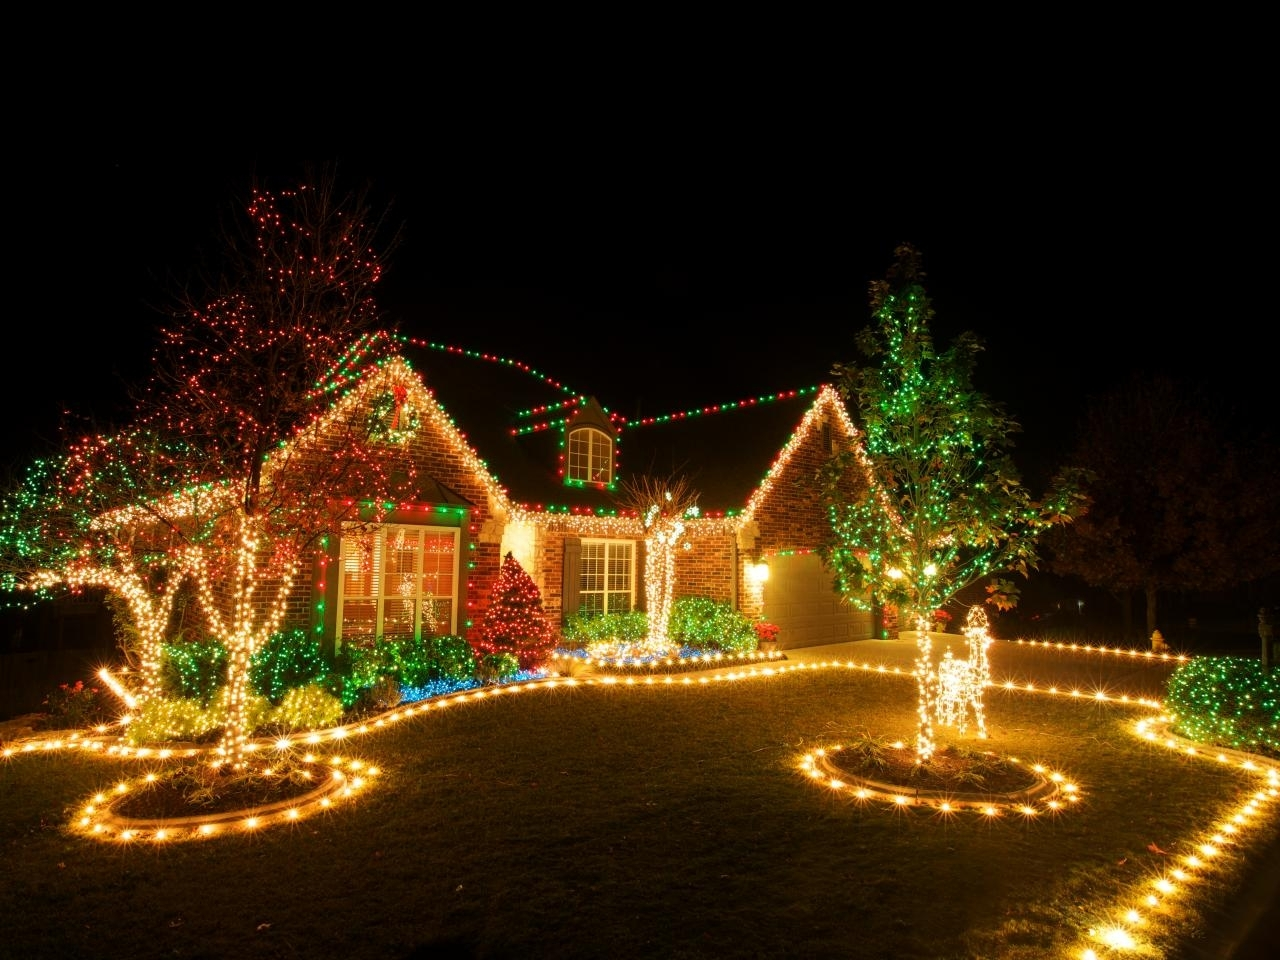 Hang Outdoor Christmas Lights : 6 Tips For Outdoor Christmas Lights For Hanging Outdoor Christmas Lights In Trees (#12 of 15)